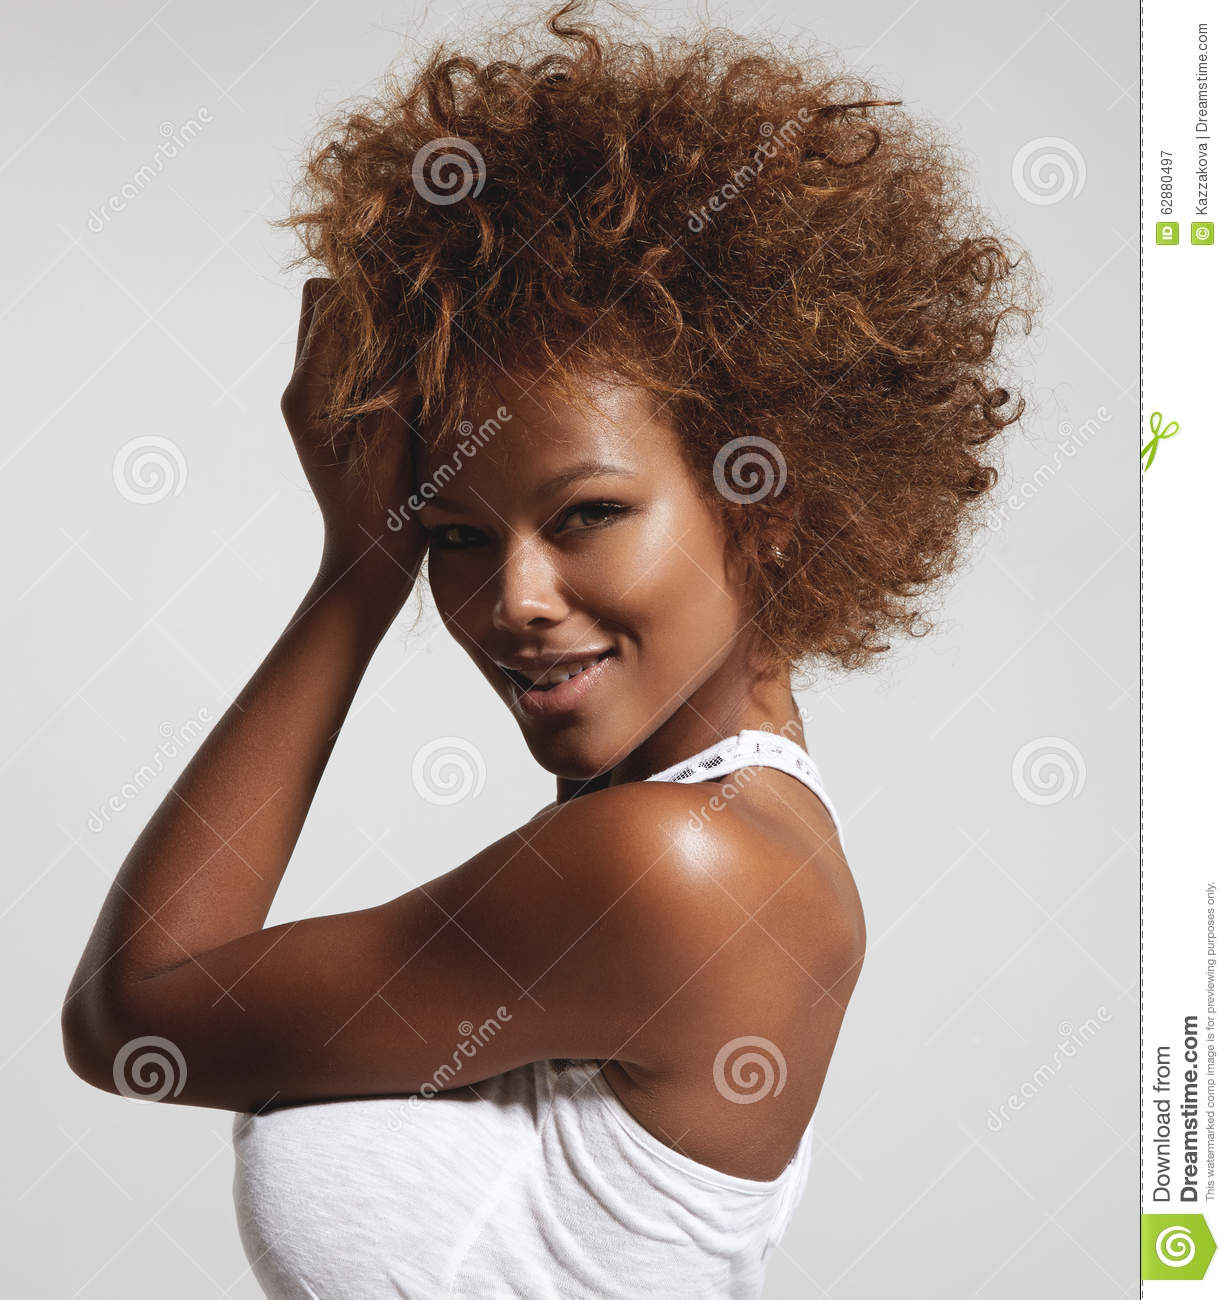 Black Woman With Short Afro Hair Stock Image , Image of